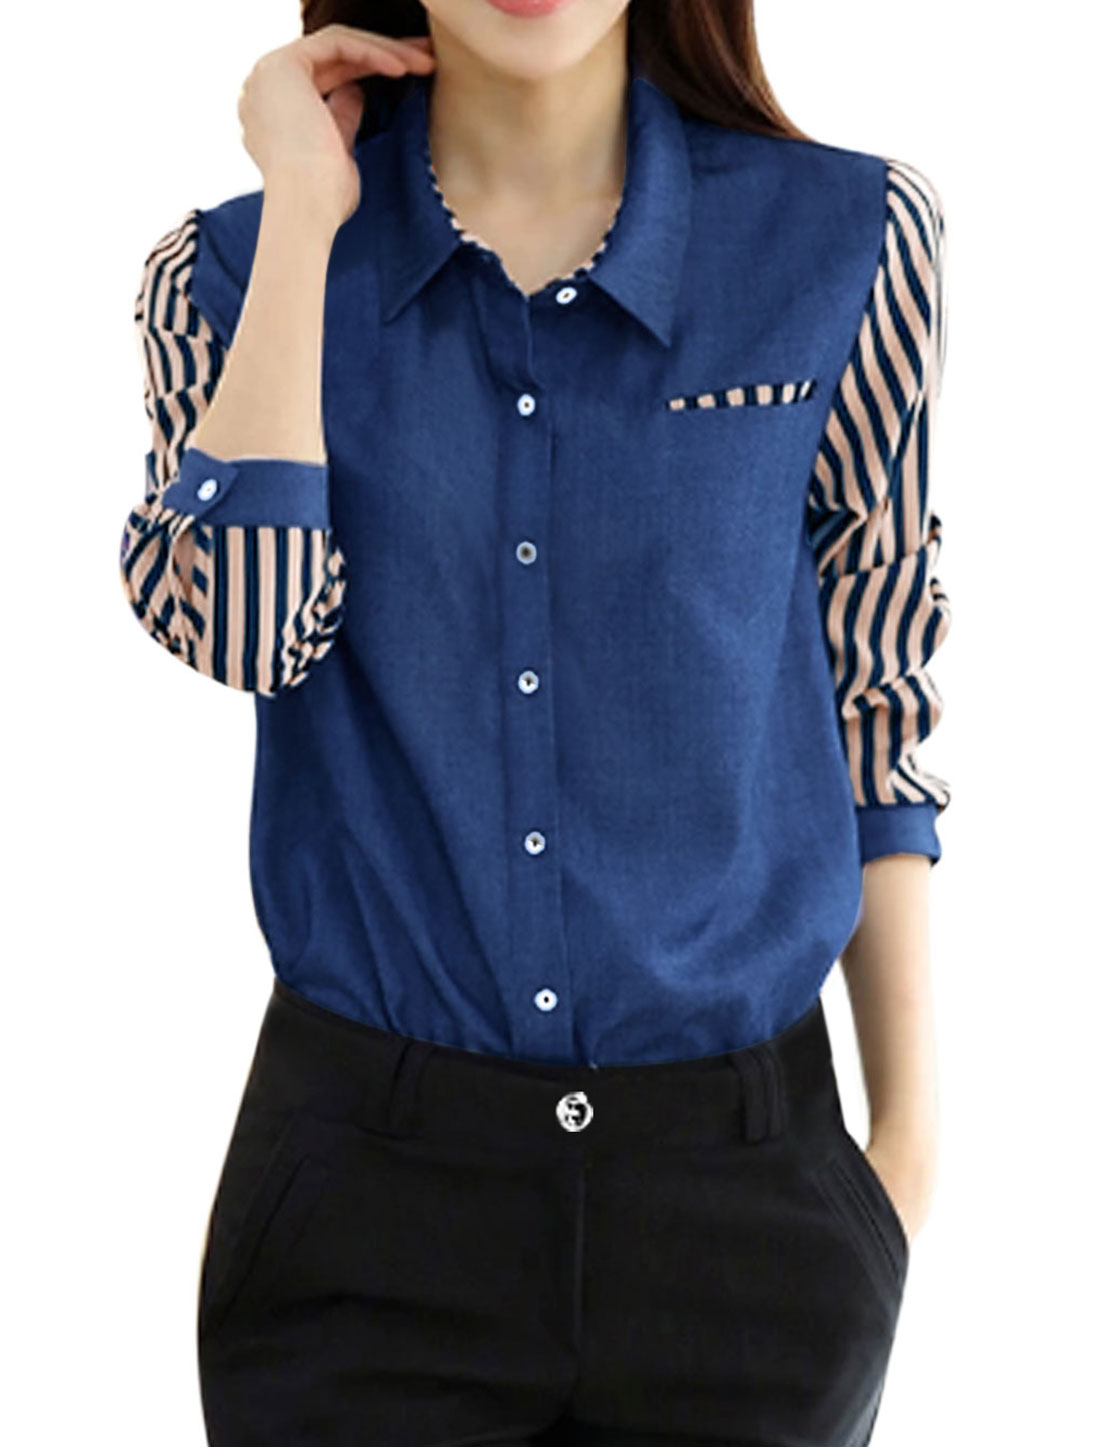 Women Single Breasted Chiffon Panel One Bust Pocket Denim Shirt Blue S